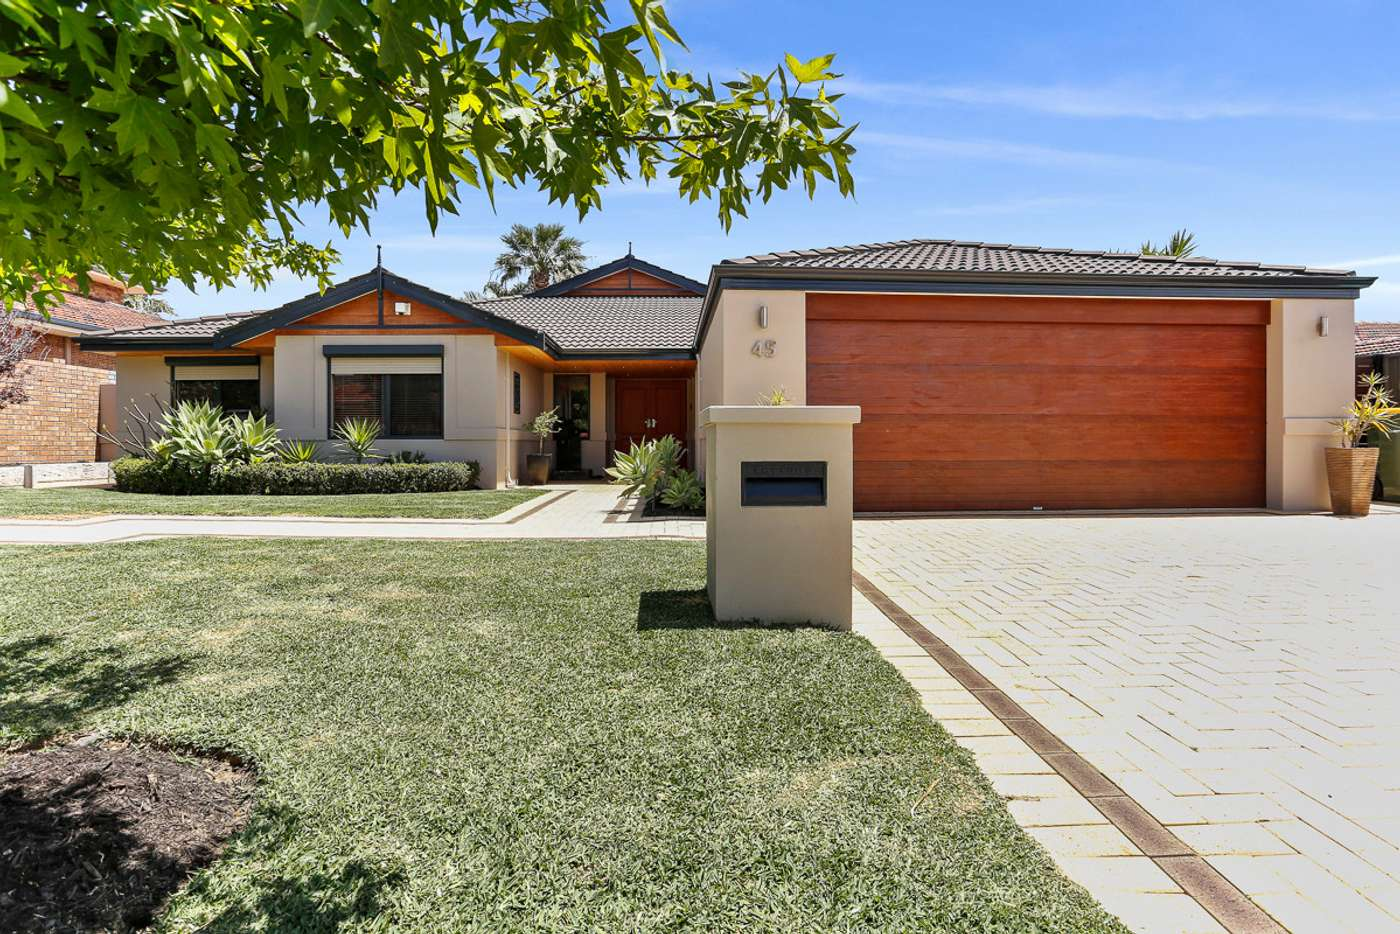 Main view of Homely house listing, 45 Jardine Street, Stirling WA 6021